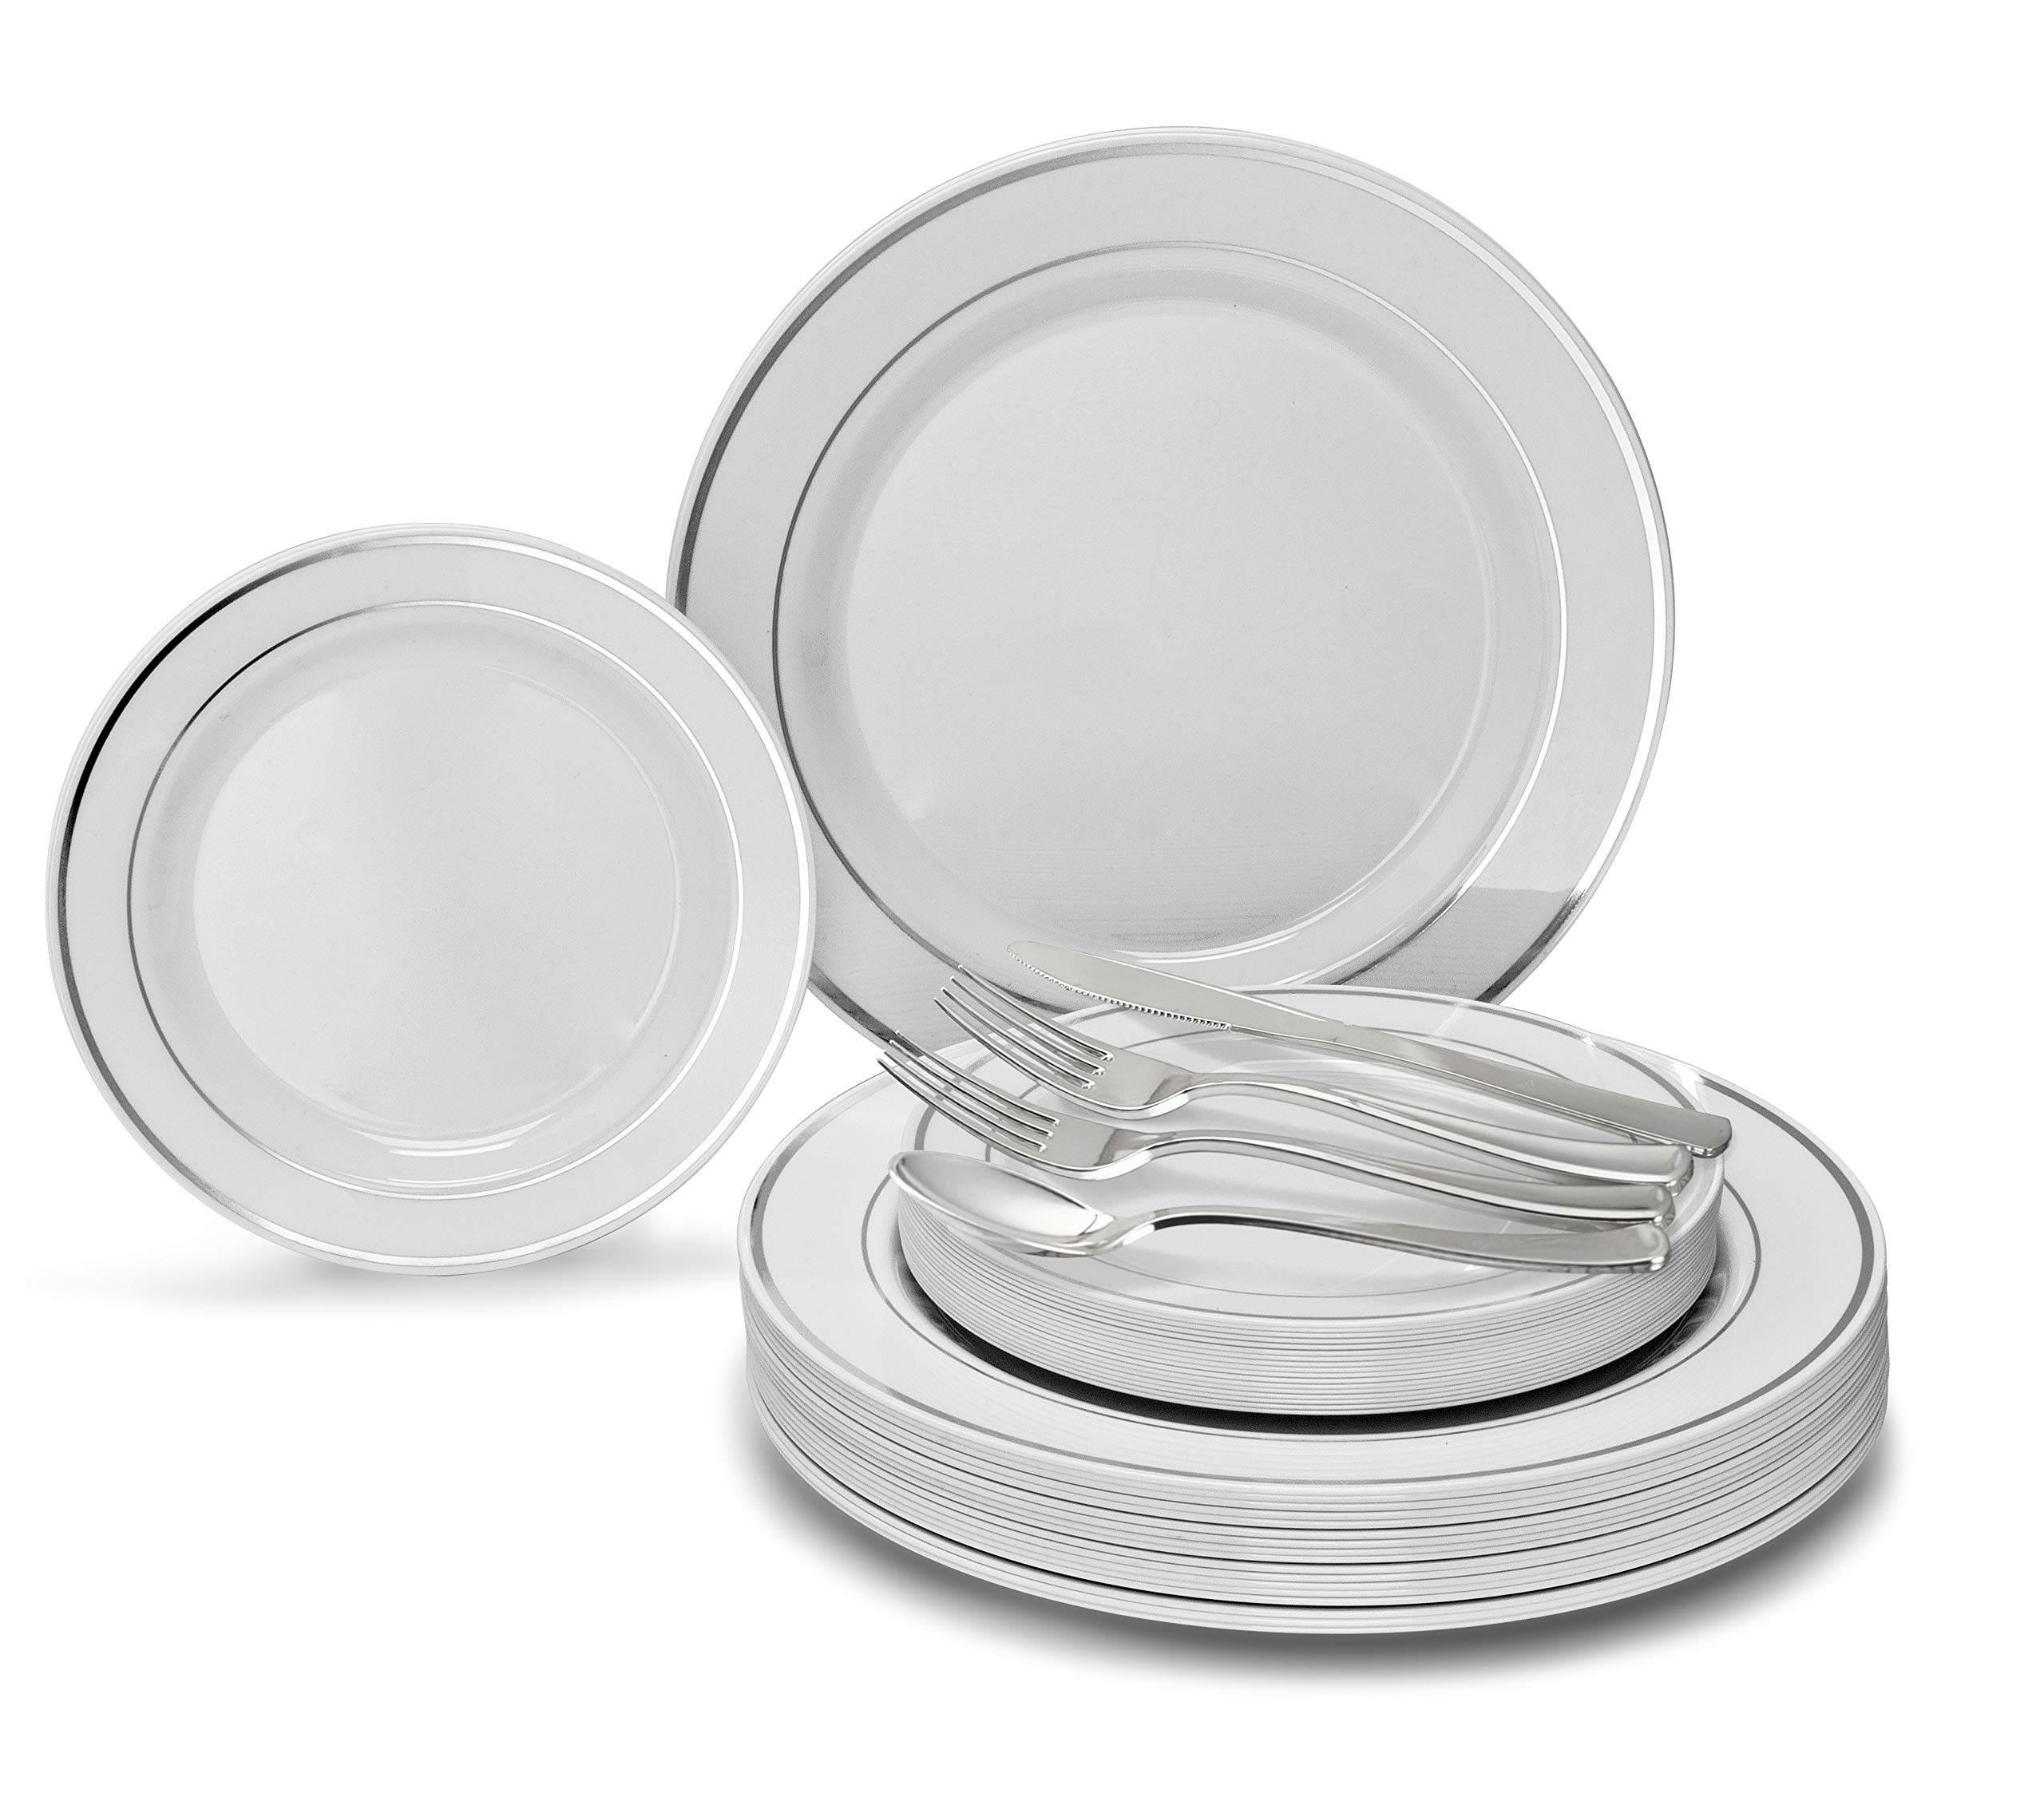 360 PIECE / 60 guest ''OCCASIONS'' Wedding Disposable Plastic Plate and Silverware Combo (White/Silver rim plates)